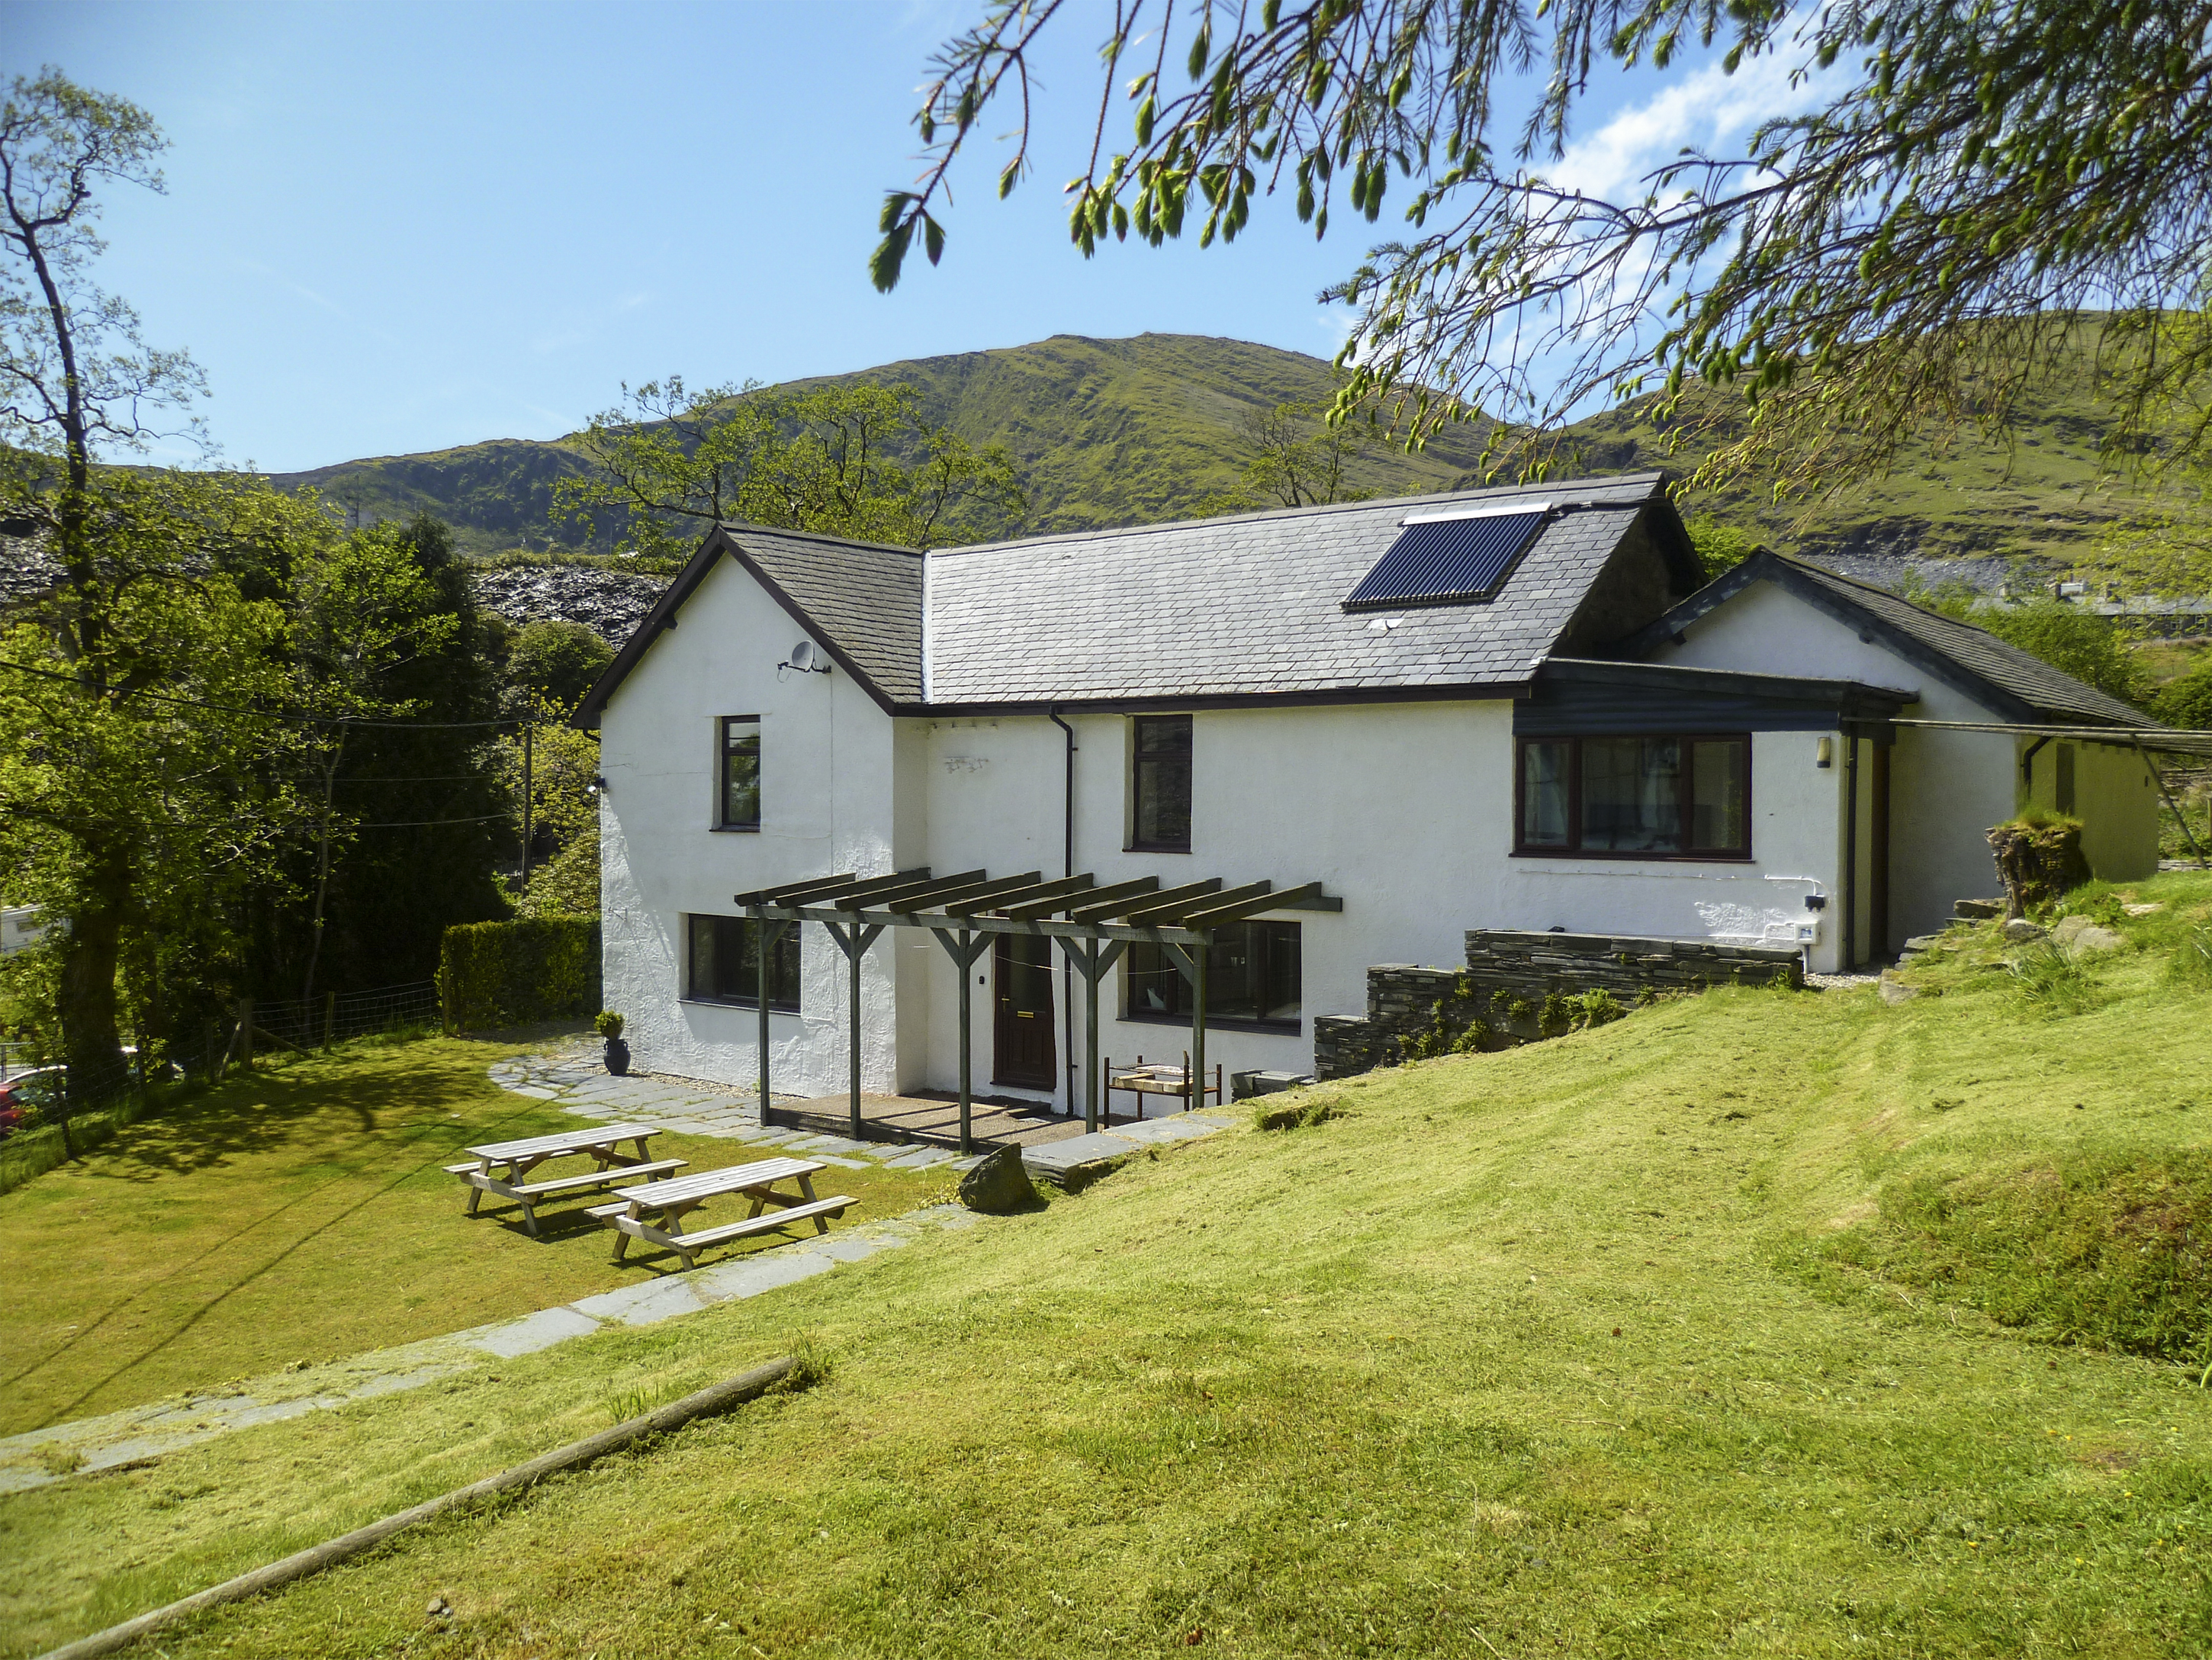 5 bedroom Cottage for rent in Blaenau Ffestiniog